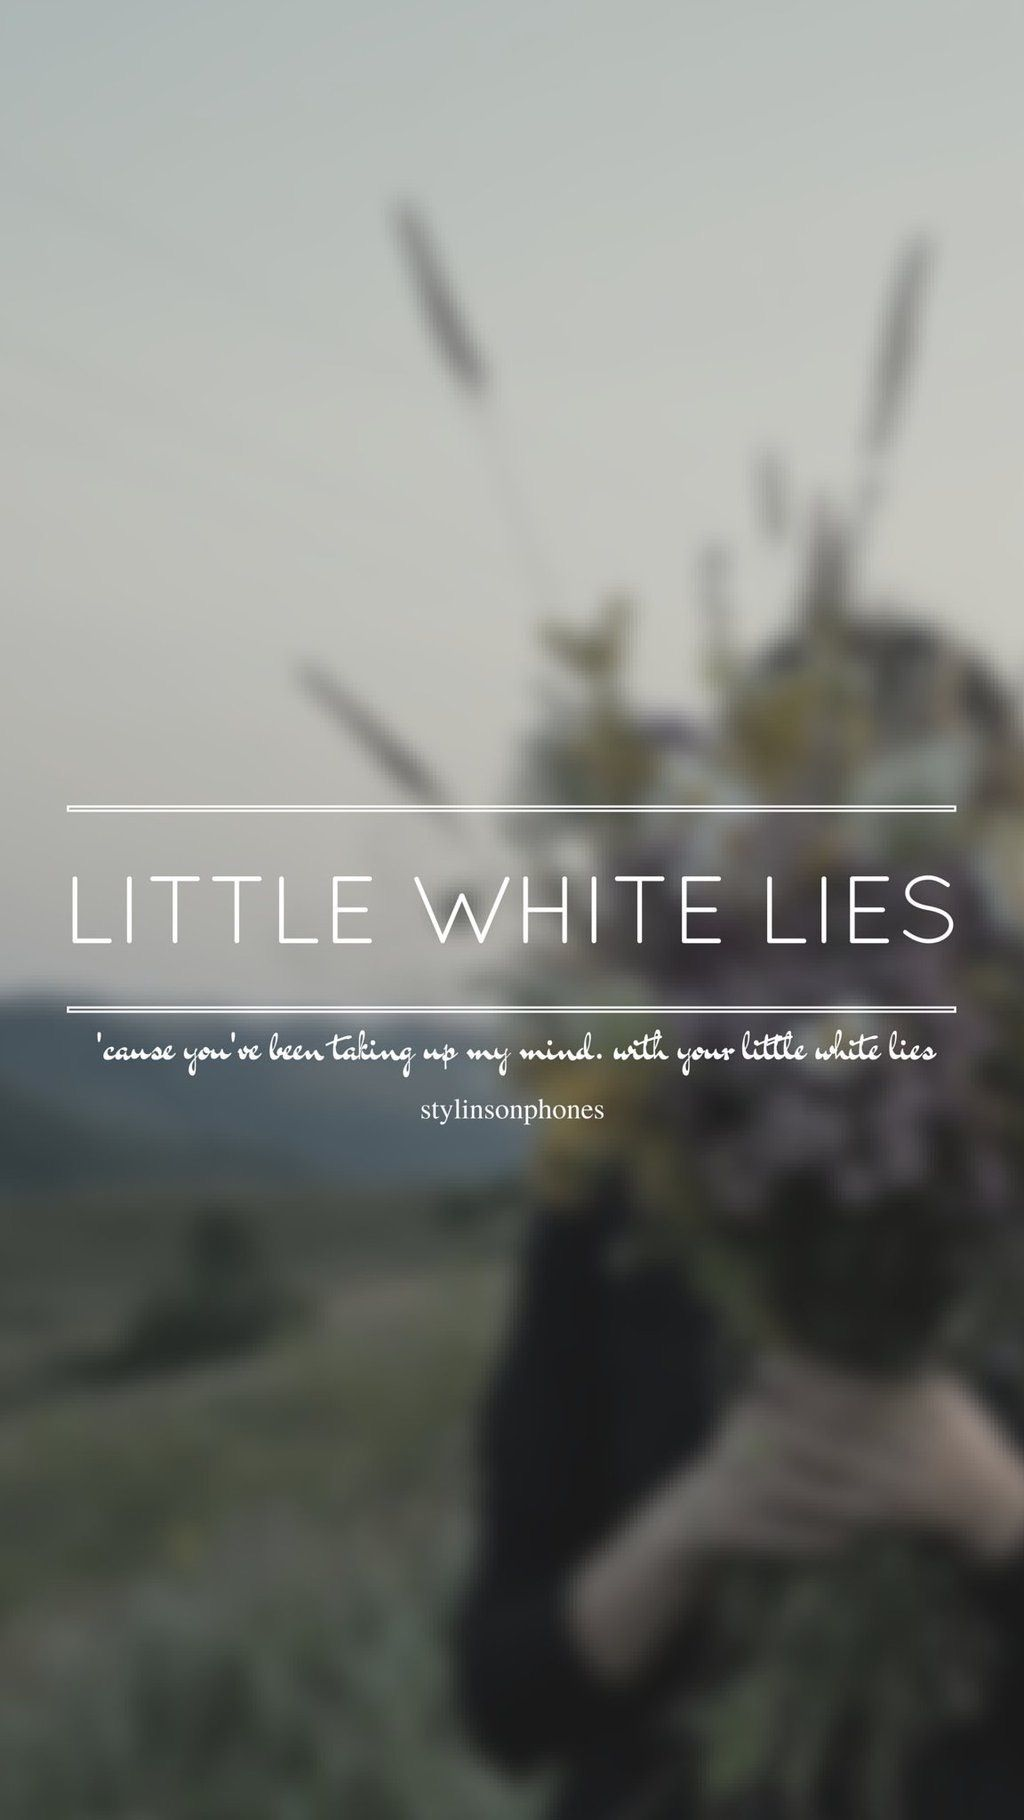 Little White Lies One Direction Ctto At Stylinsonphones